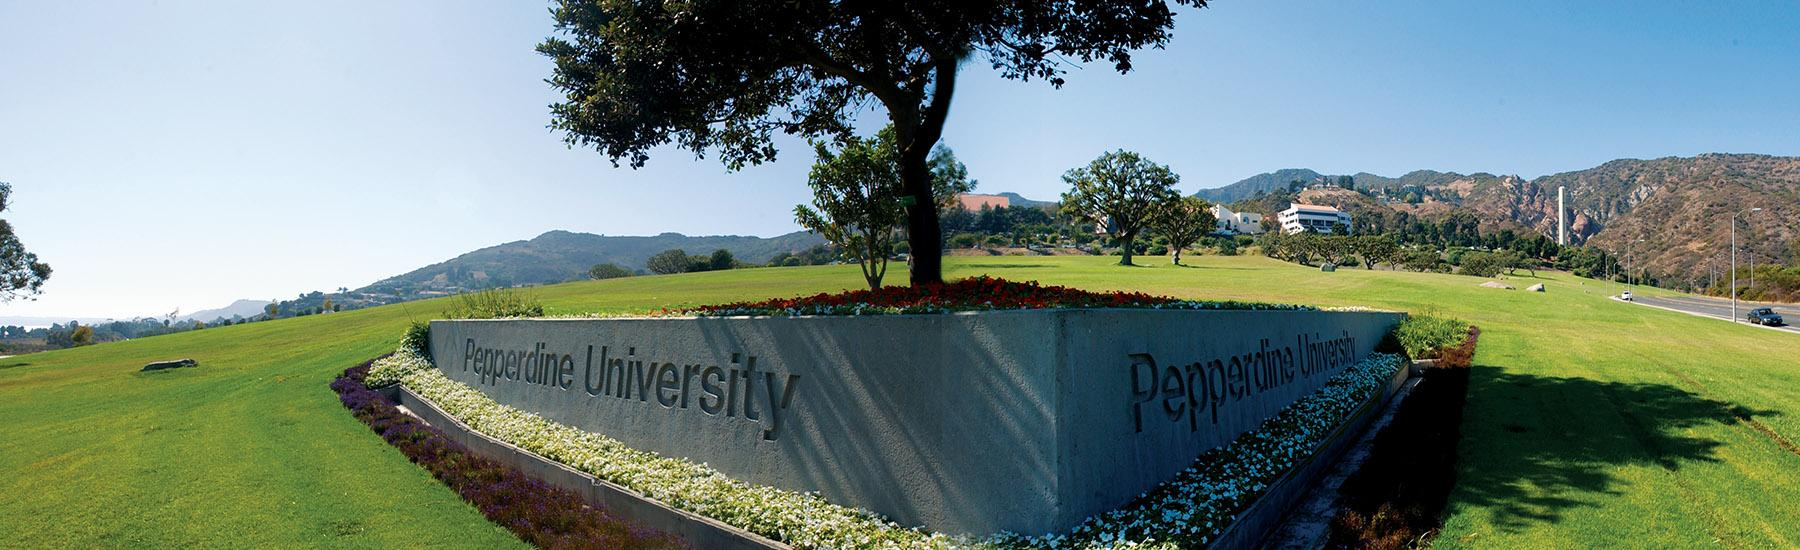 job design at pepperdine university essay University of arizona essay prompt spotlight pepperdine university application the we seek students applying to develop job skills, and design and taking free.